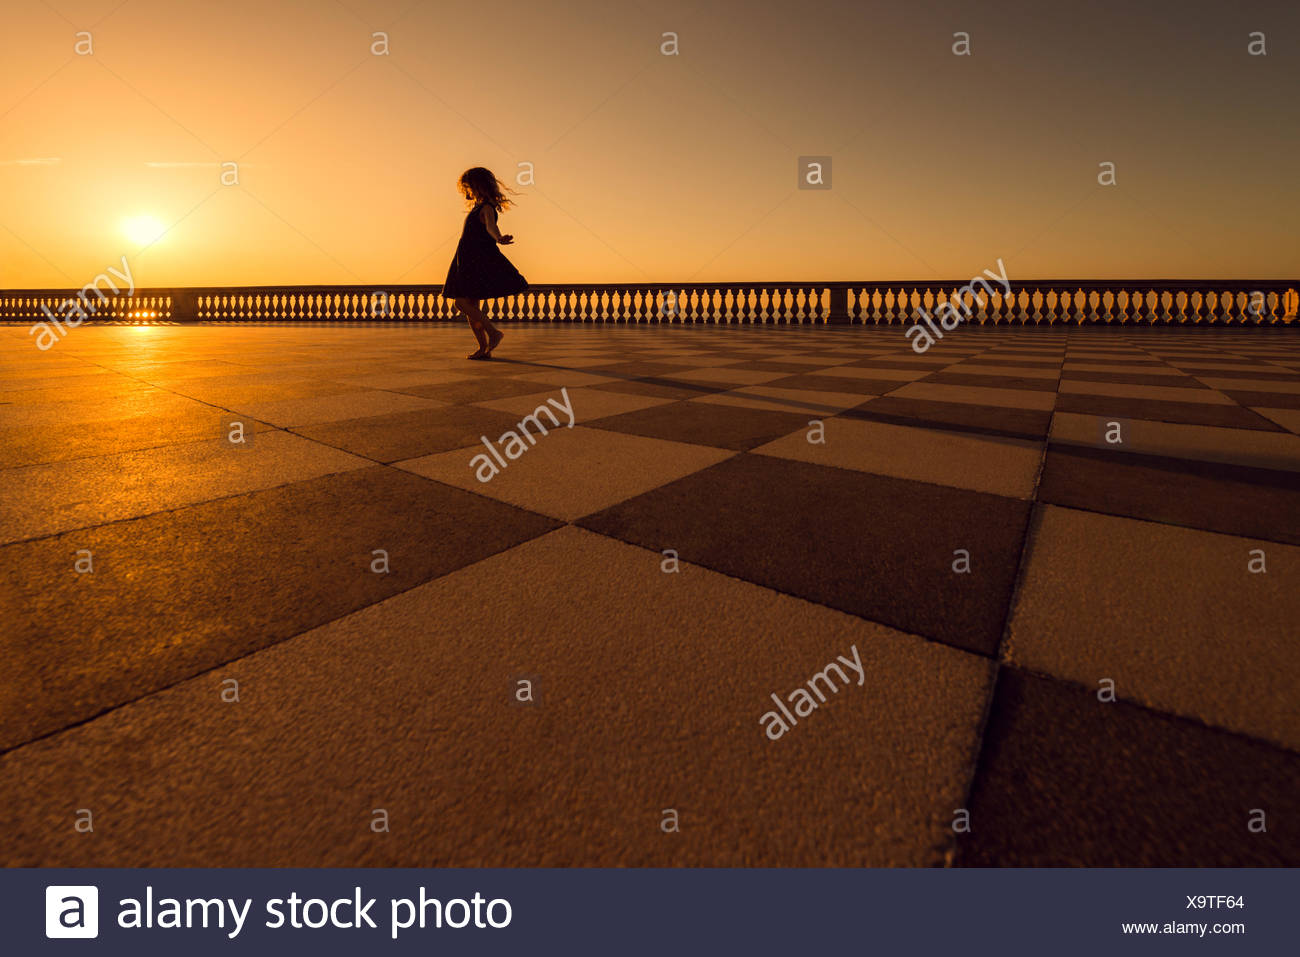 Terrazza Mascagni Stock Photos & Terrazza Mascagni Stock Images - Alamy